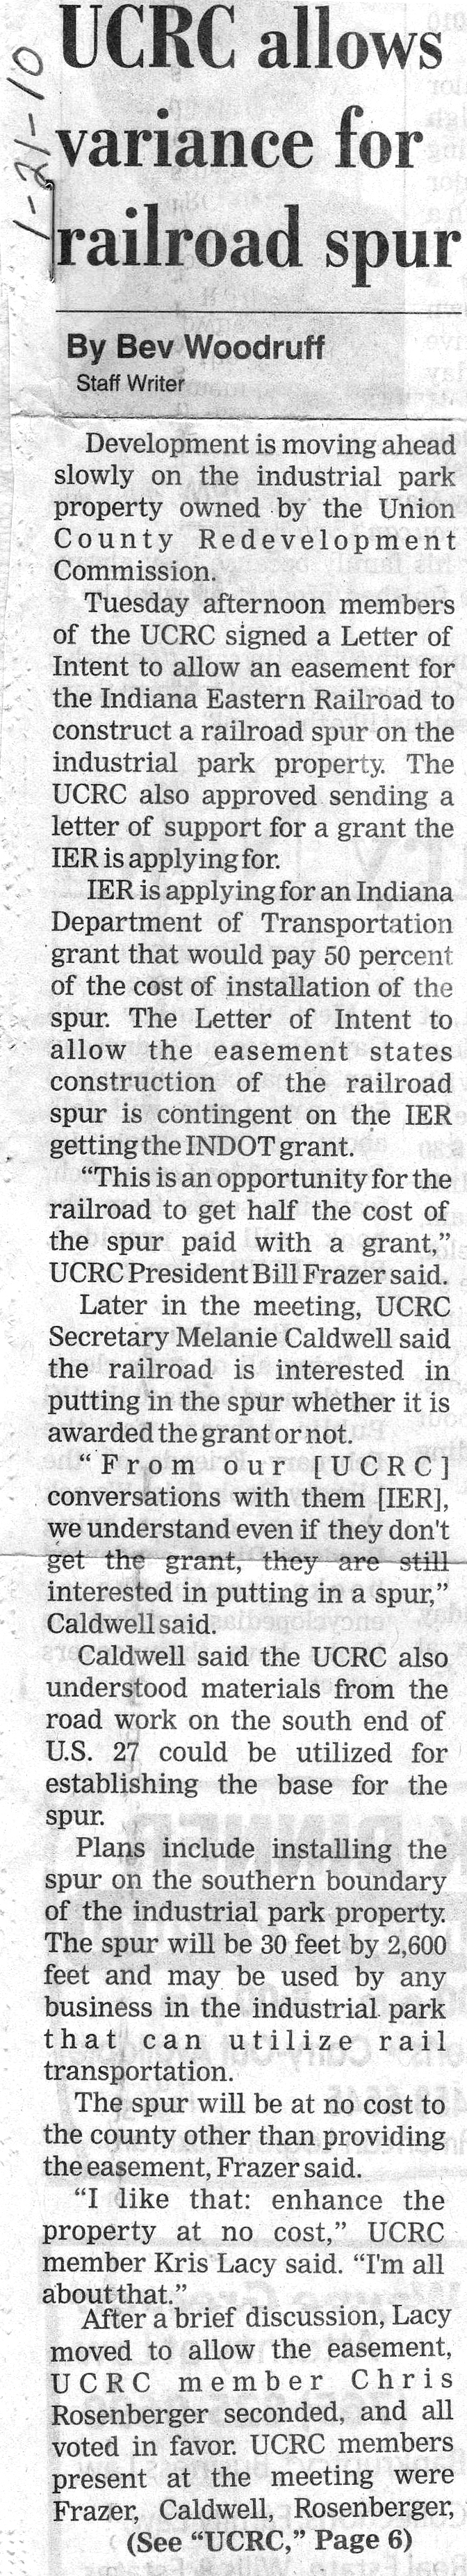 UCRC Allows Variance For Railroad Spur - Liberty Herald January 21, 2010